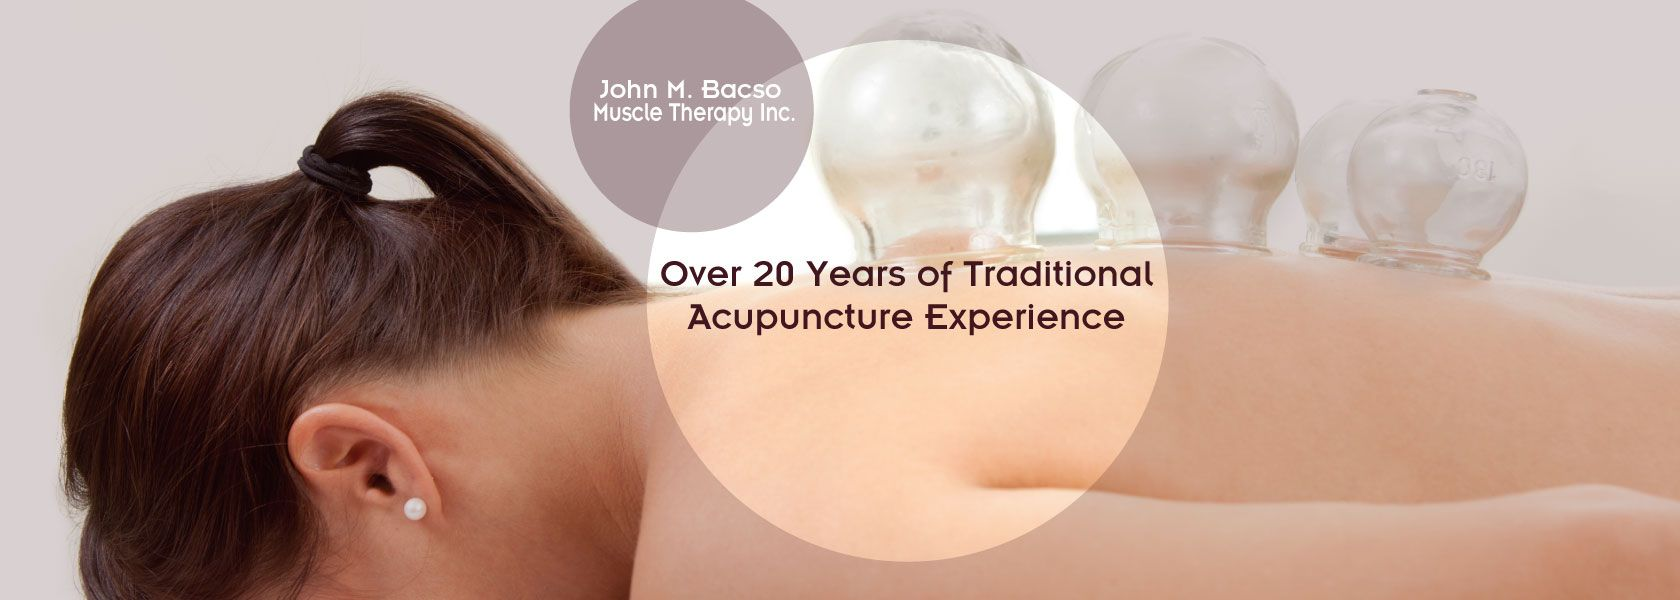 Over 20 years of traditional acupuncture experience | cupping